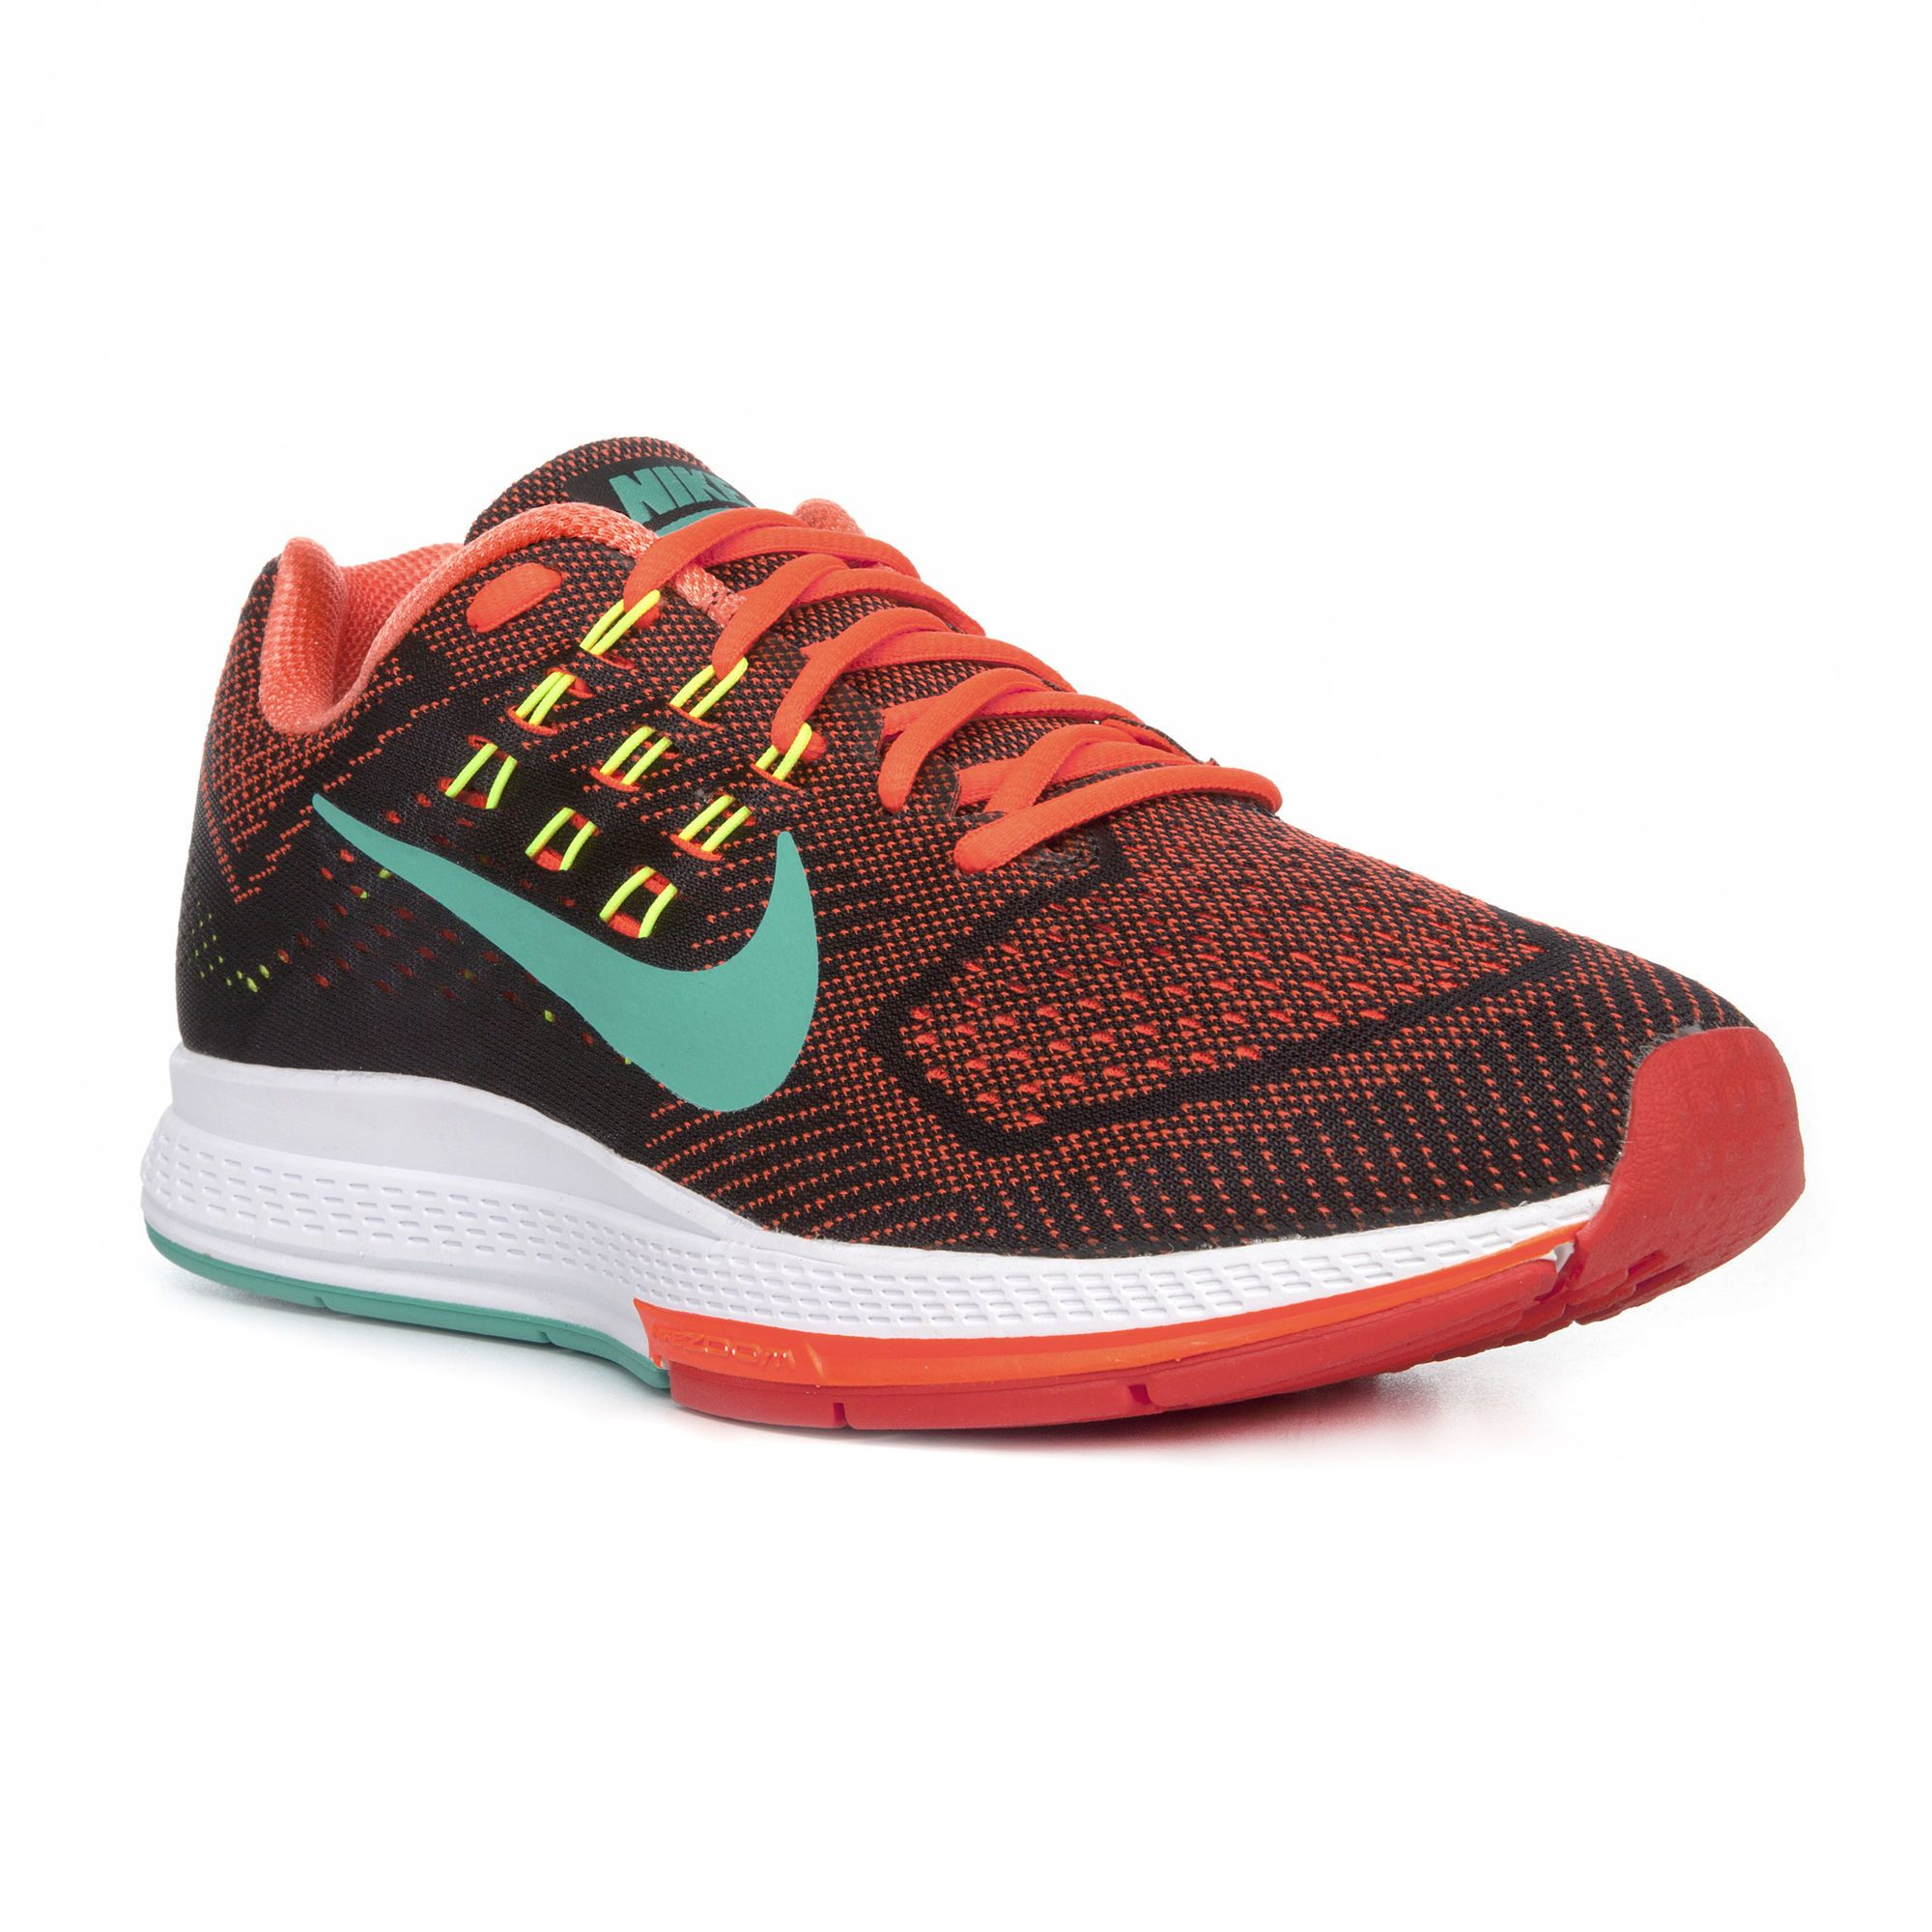 new style a94fd 3d58b ... sp15 womens purple nik11915 9df61 5ac60  promo code for wiggle.au nike  zoom structure 18 shoes ho14 stability running e5948 57329